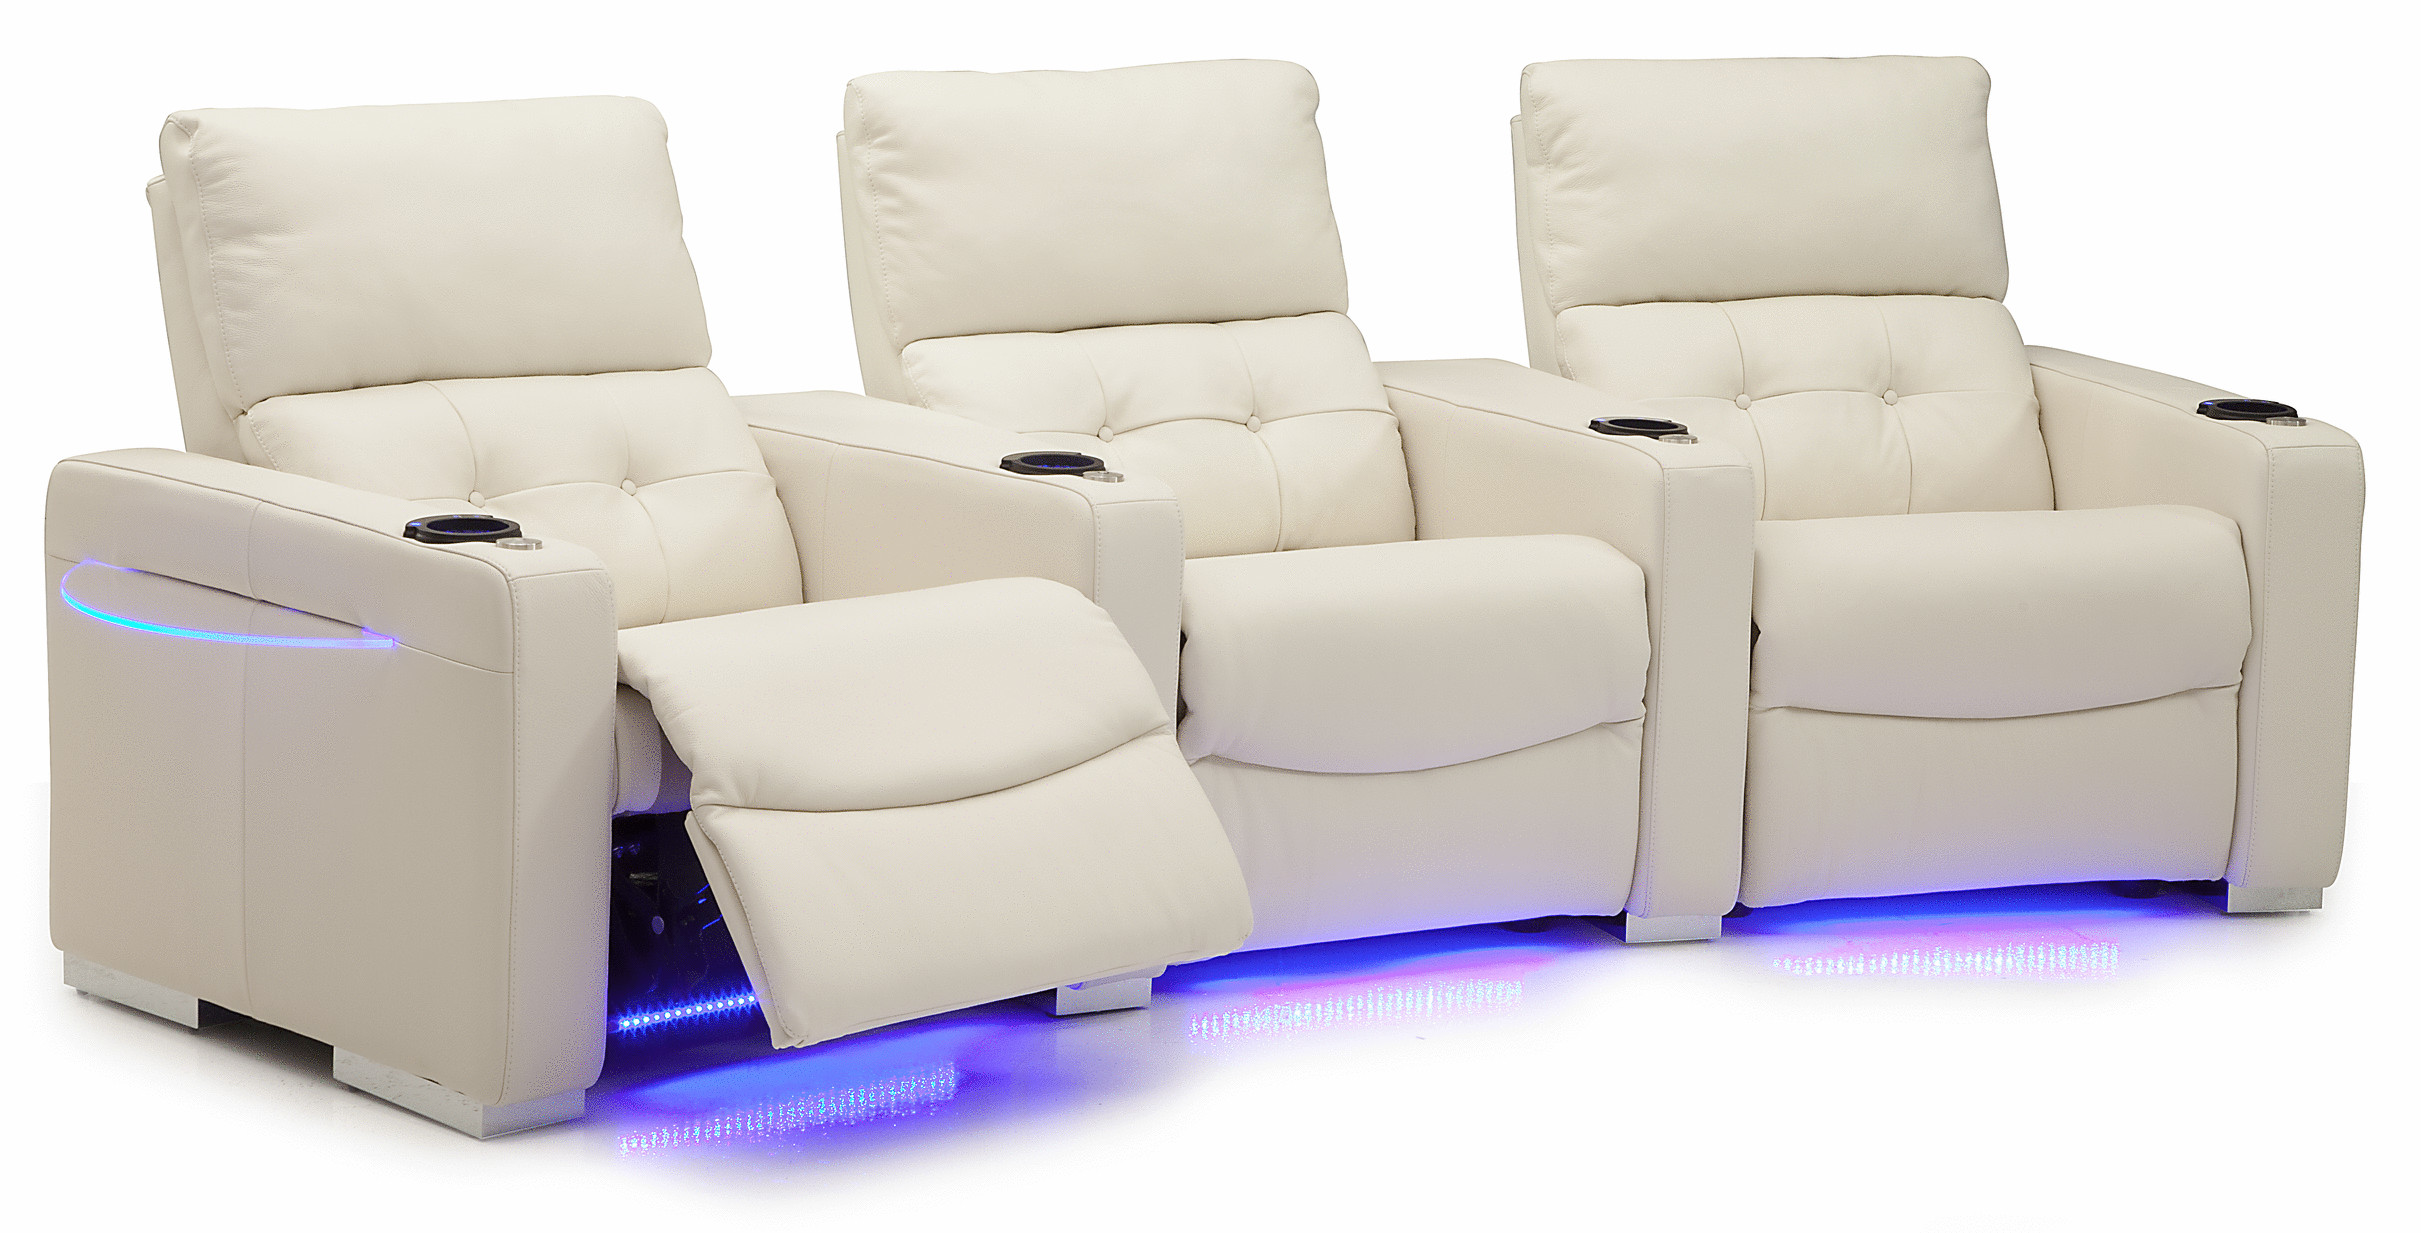 Vox Leather Theater Seating